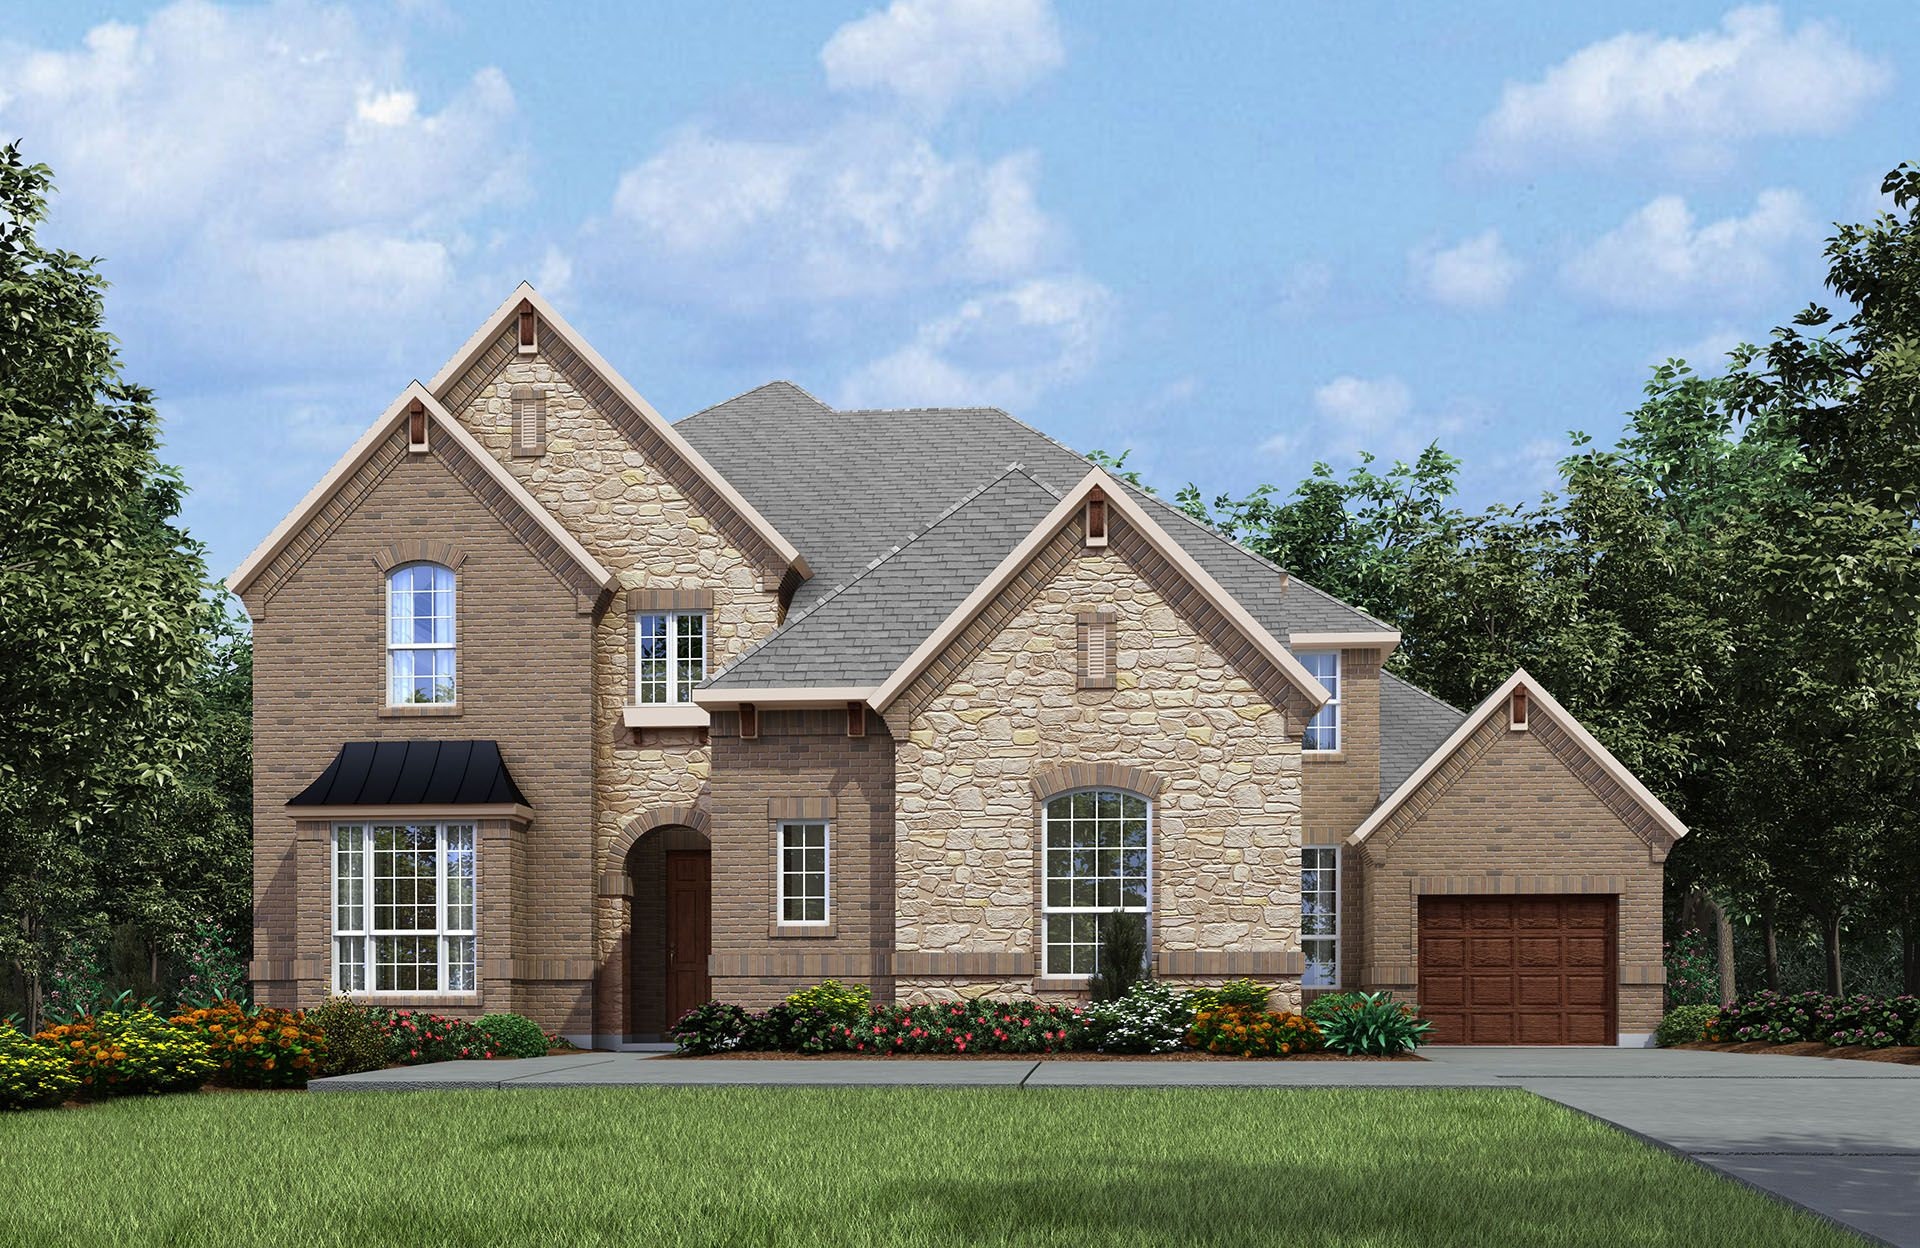 Single Family for Sale at Viridian - Oakley Ii 1344 Viridian Park Lane Arlington, Texas 76005 United States